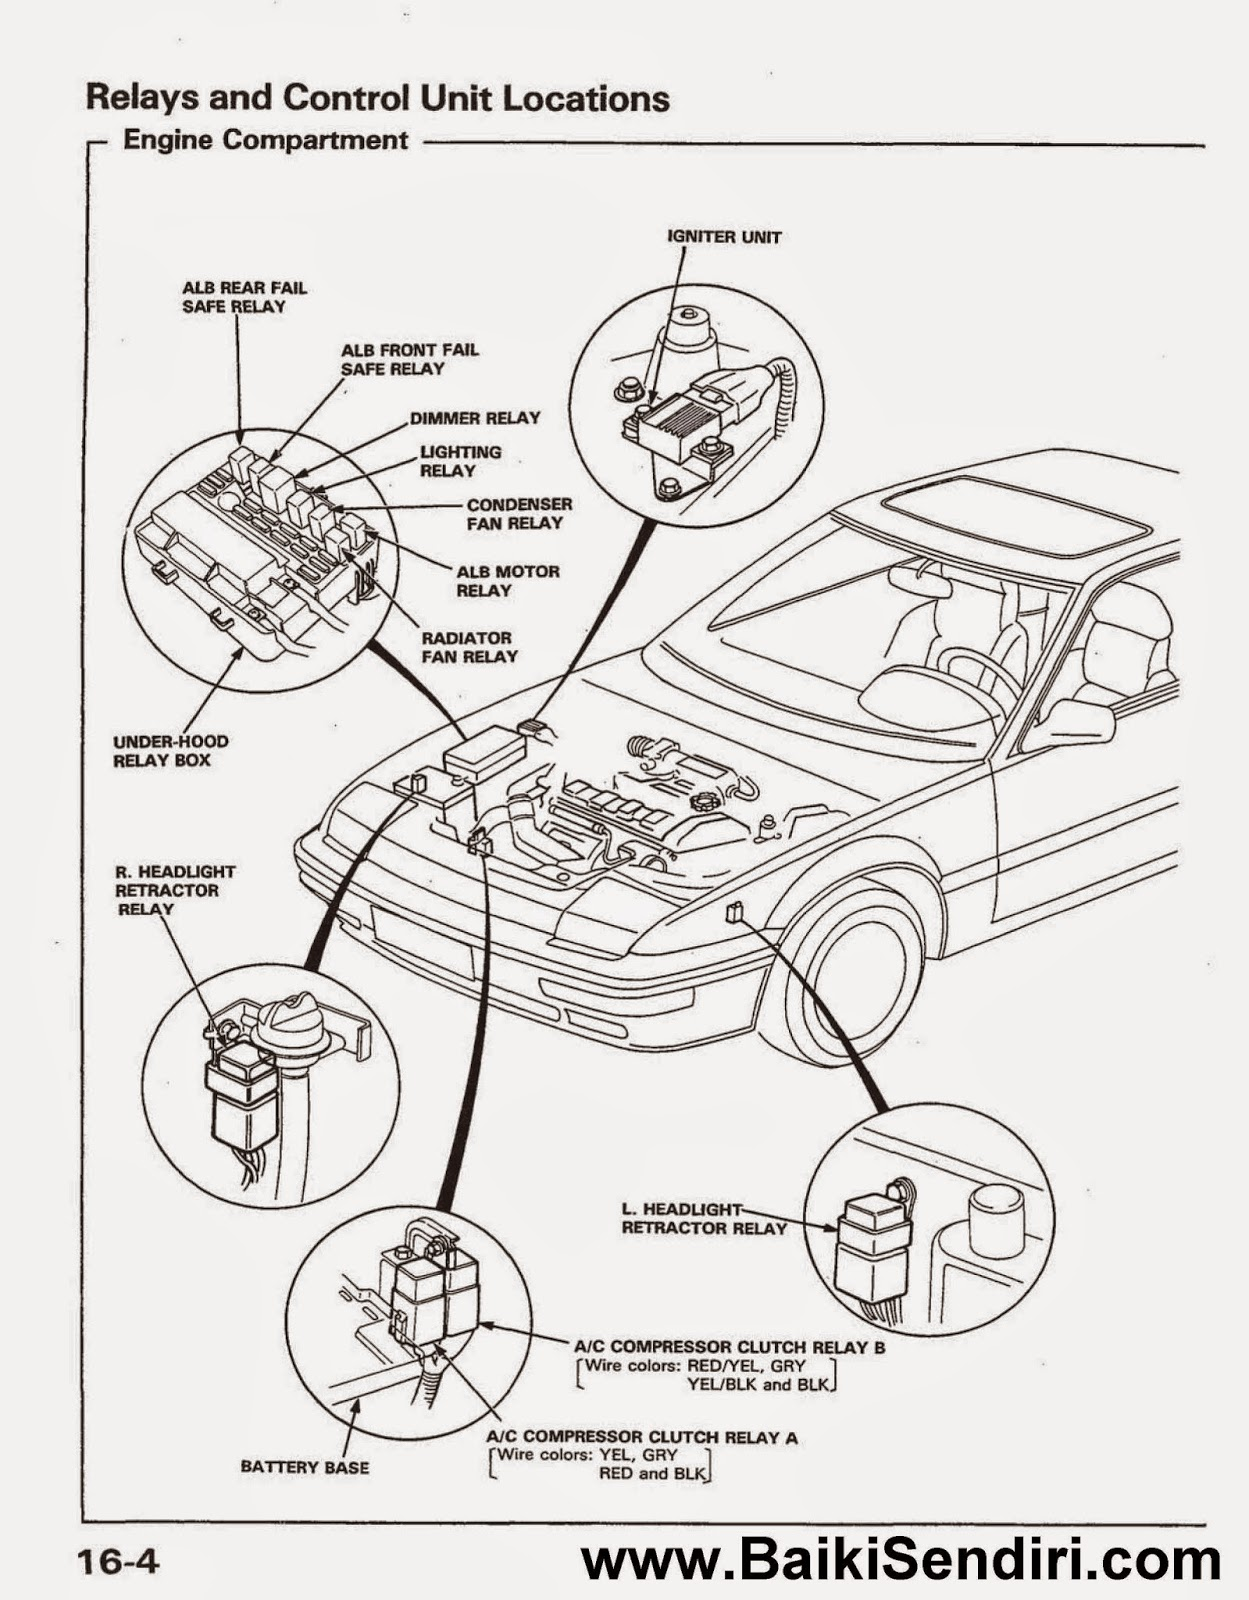 2001 honda prelude wiring diagram phone wall socket australia fuse box library